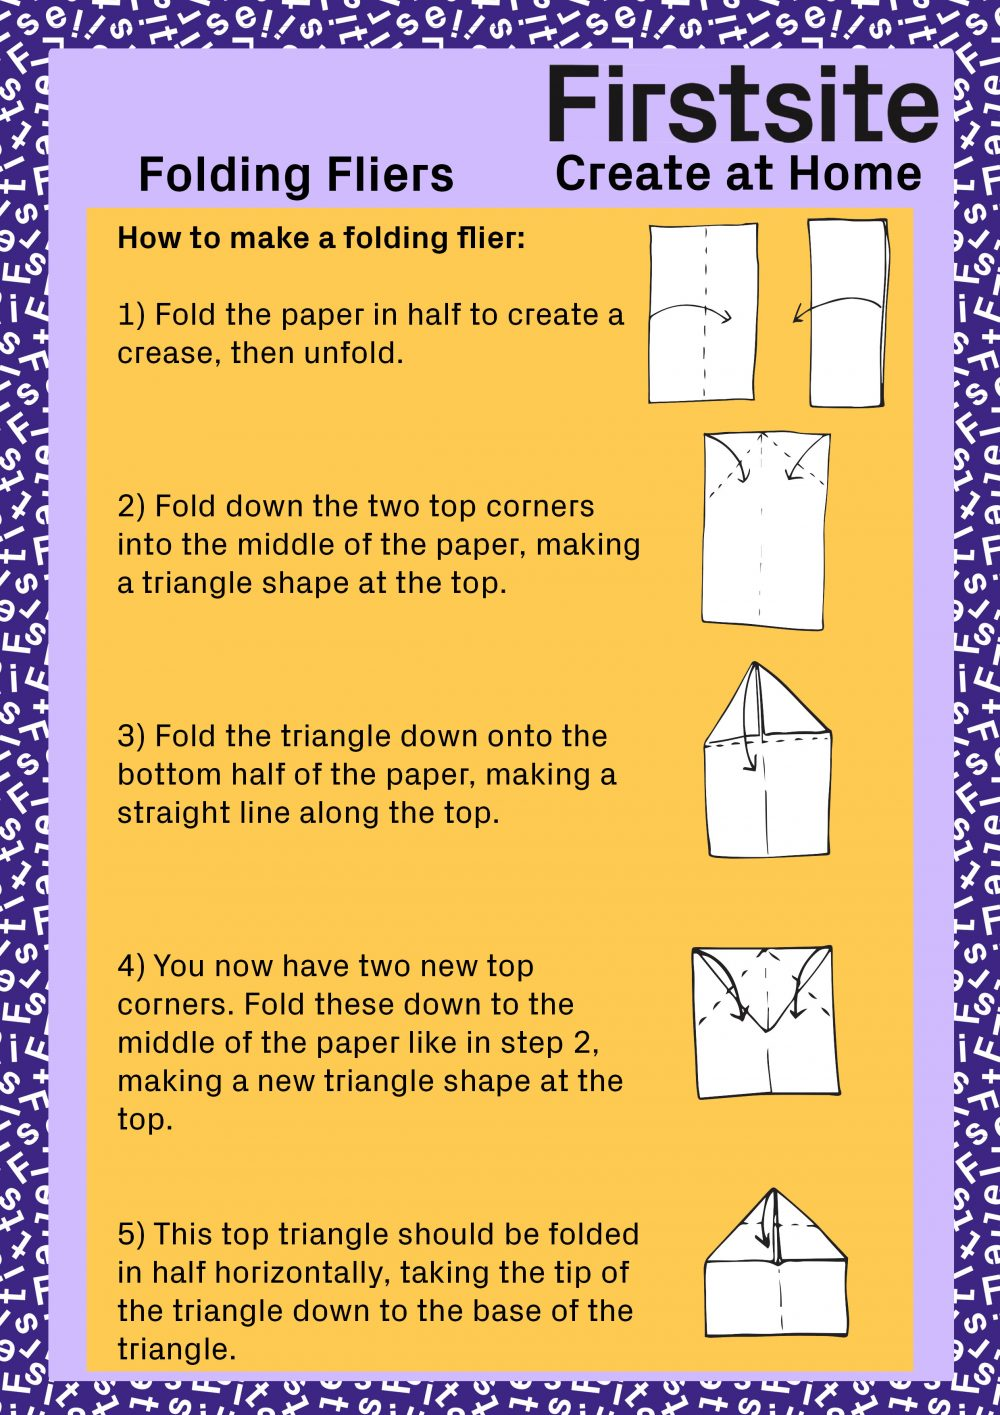 Firstsite Create at Home Folding Fliers Instructions page 2 of 3